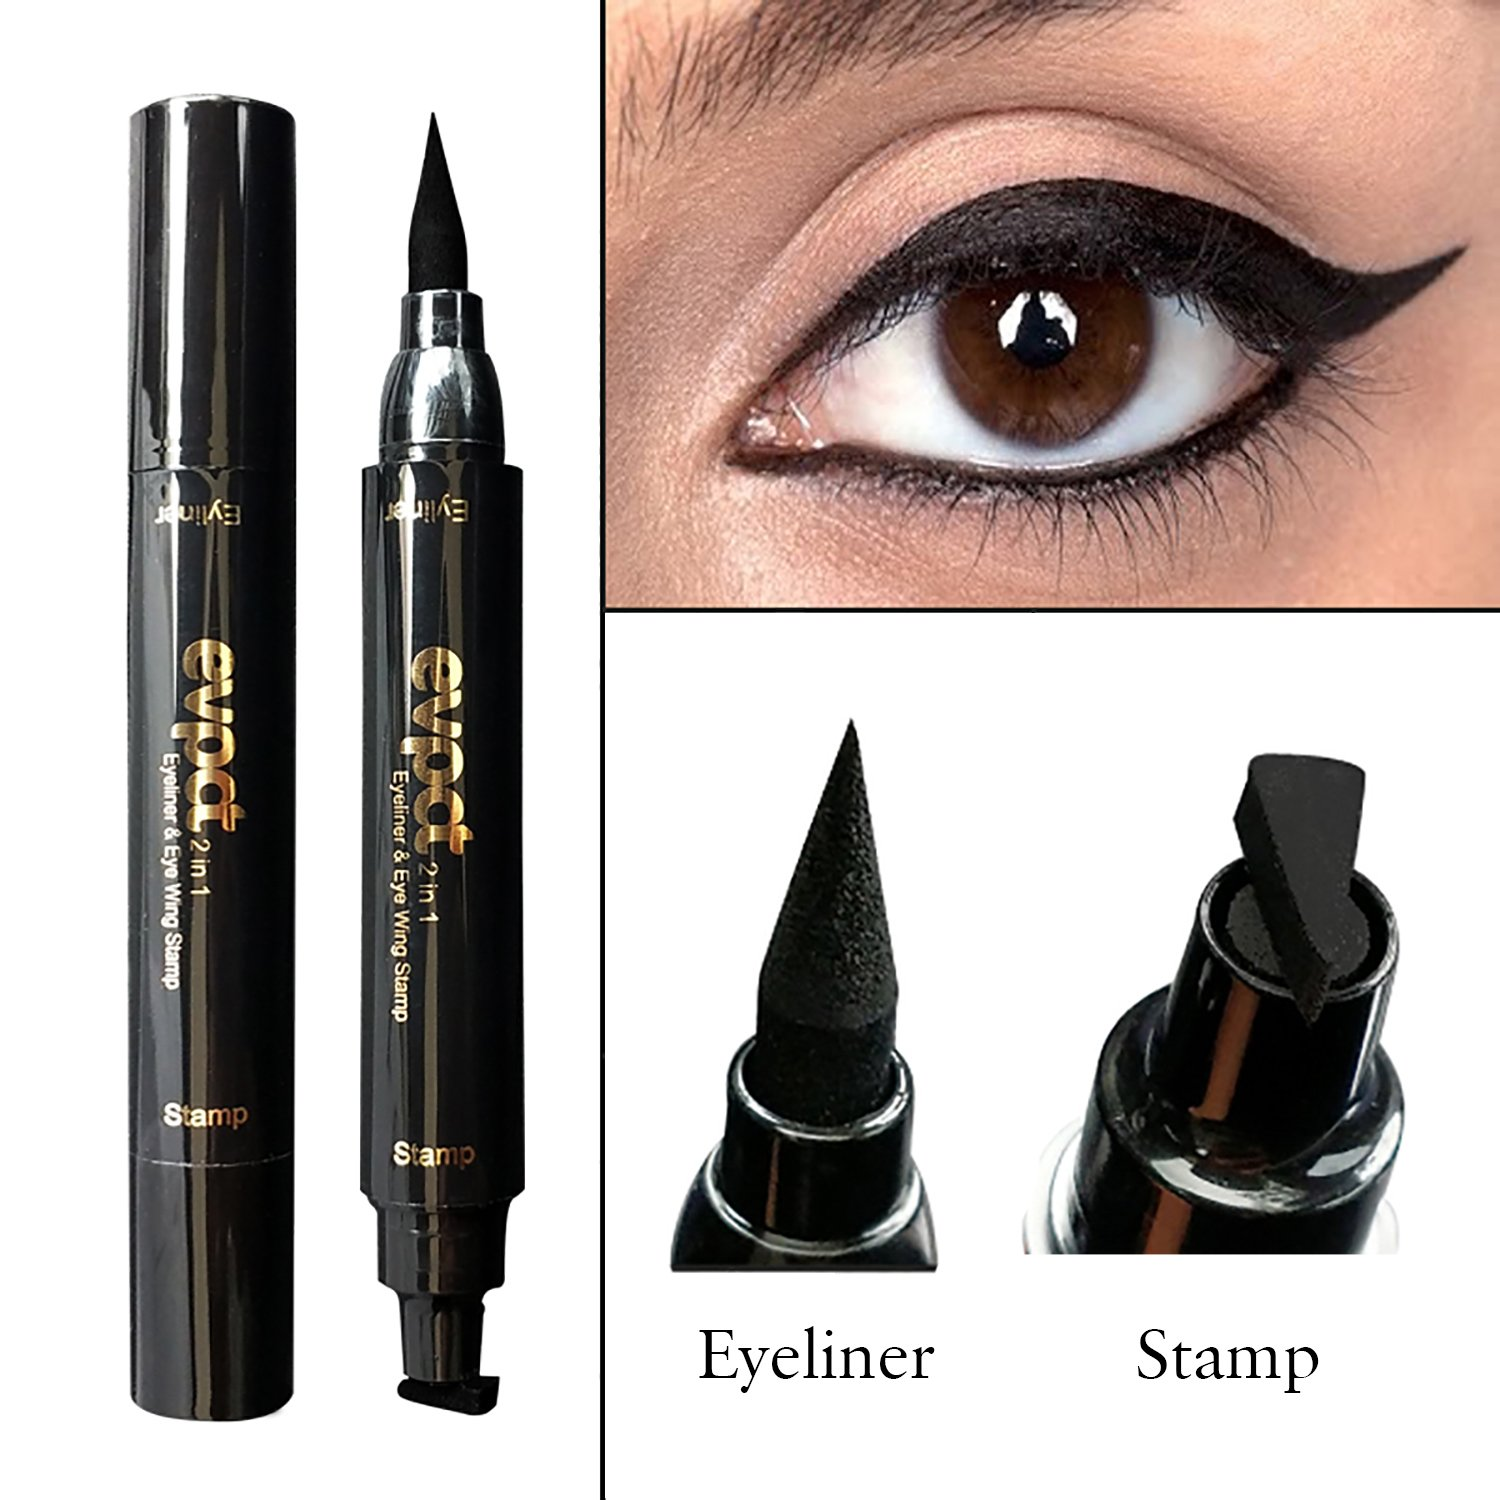 Eyeliner Stamp –2 in 1 Winged eyeliner stamp and Liquid Eyeliner Pen,waterproof, smudgeproof, winged long lasting liquid eye liner pen, Vamp style wing, No Dipping required by AsaVea